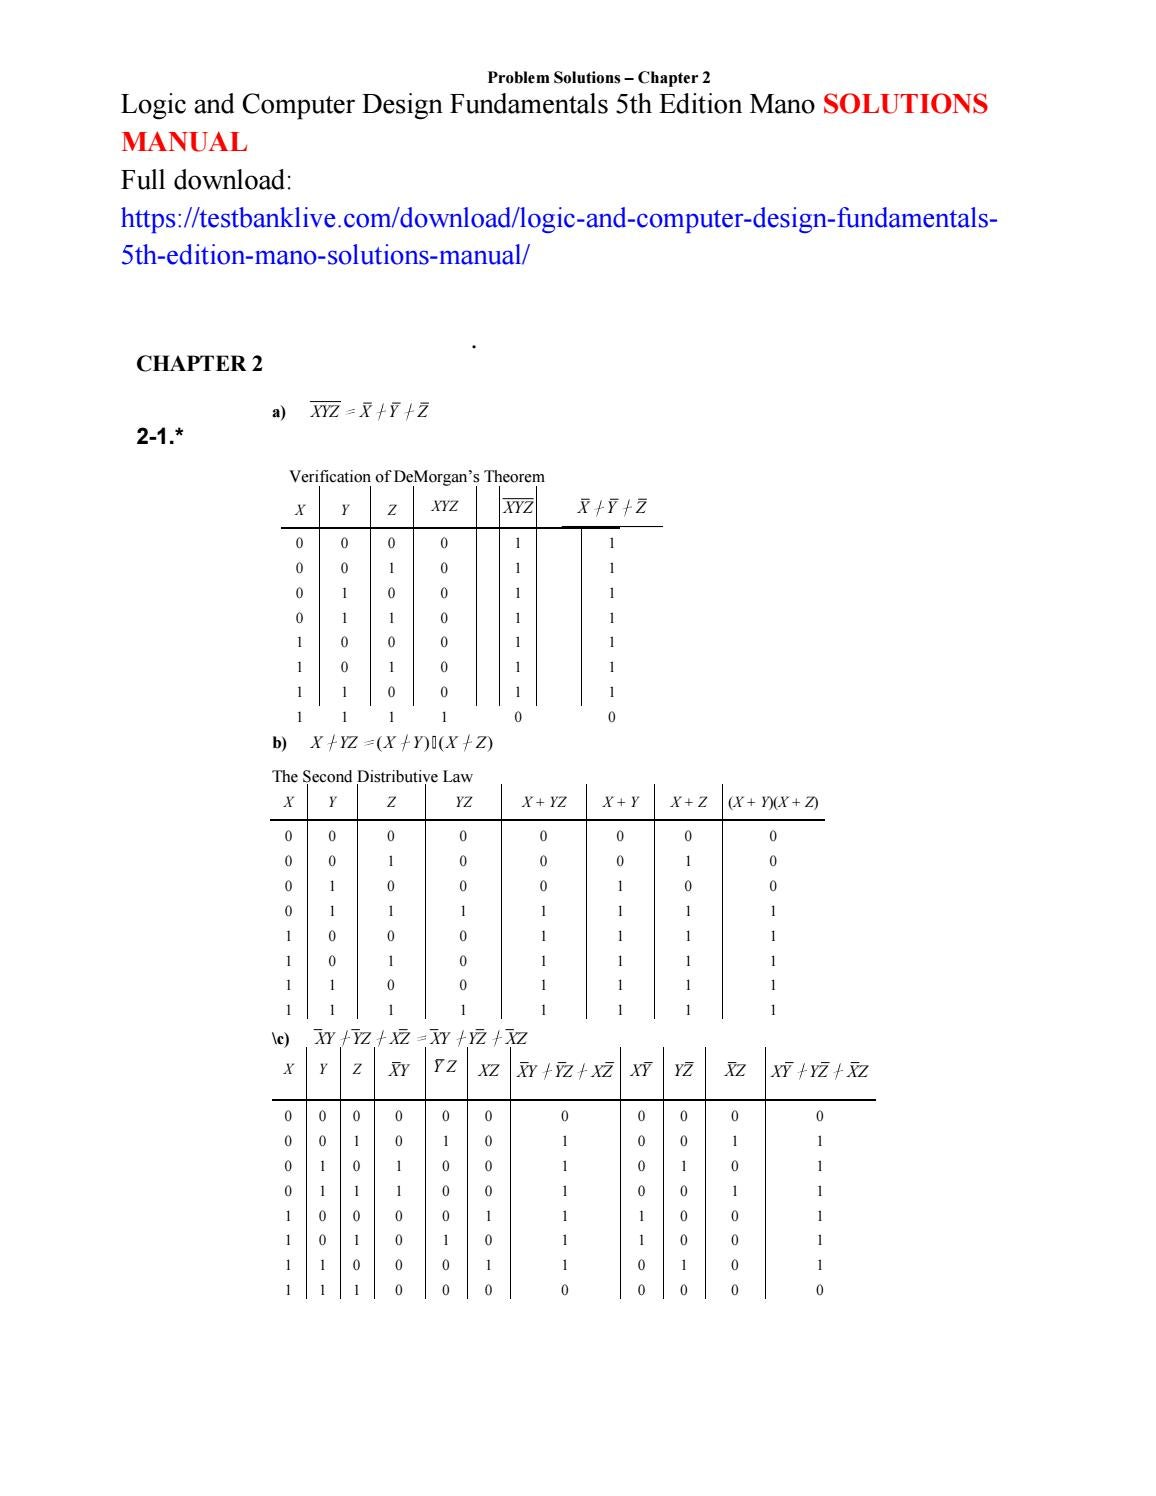 Logic and computer design fundamentals 5th edition mano solutions manual by  princess5648 - issuu